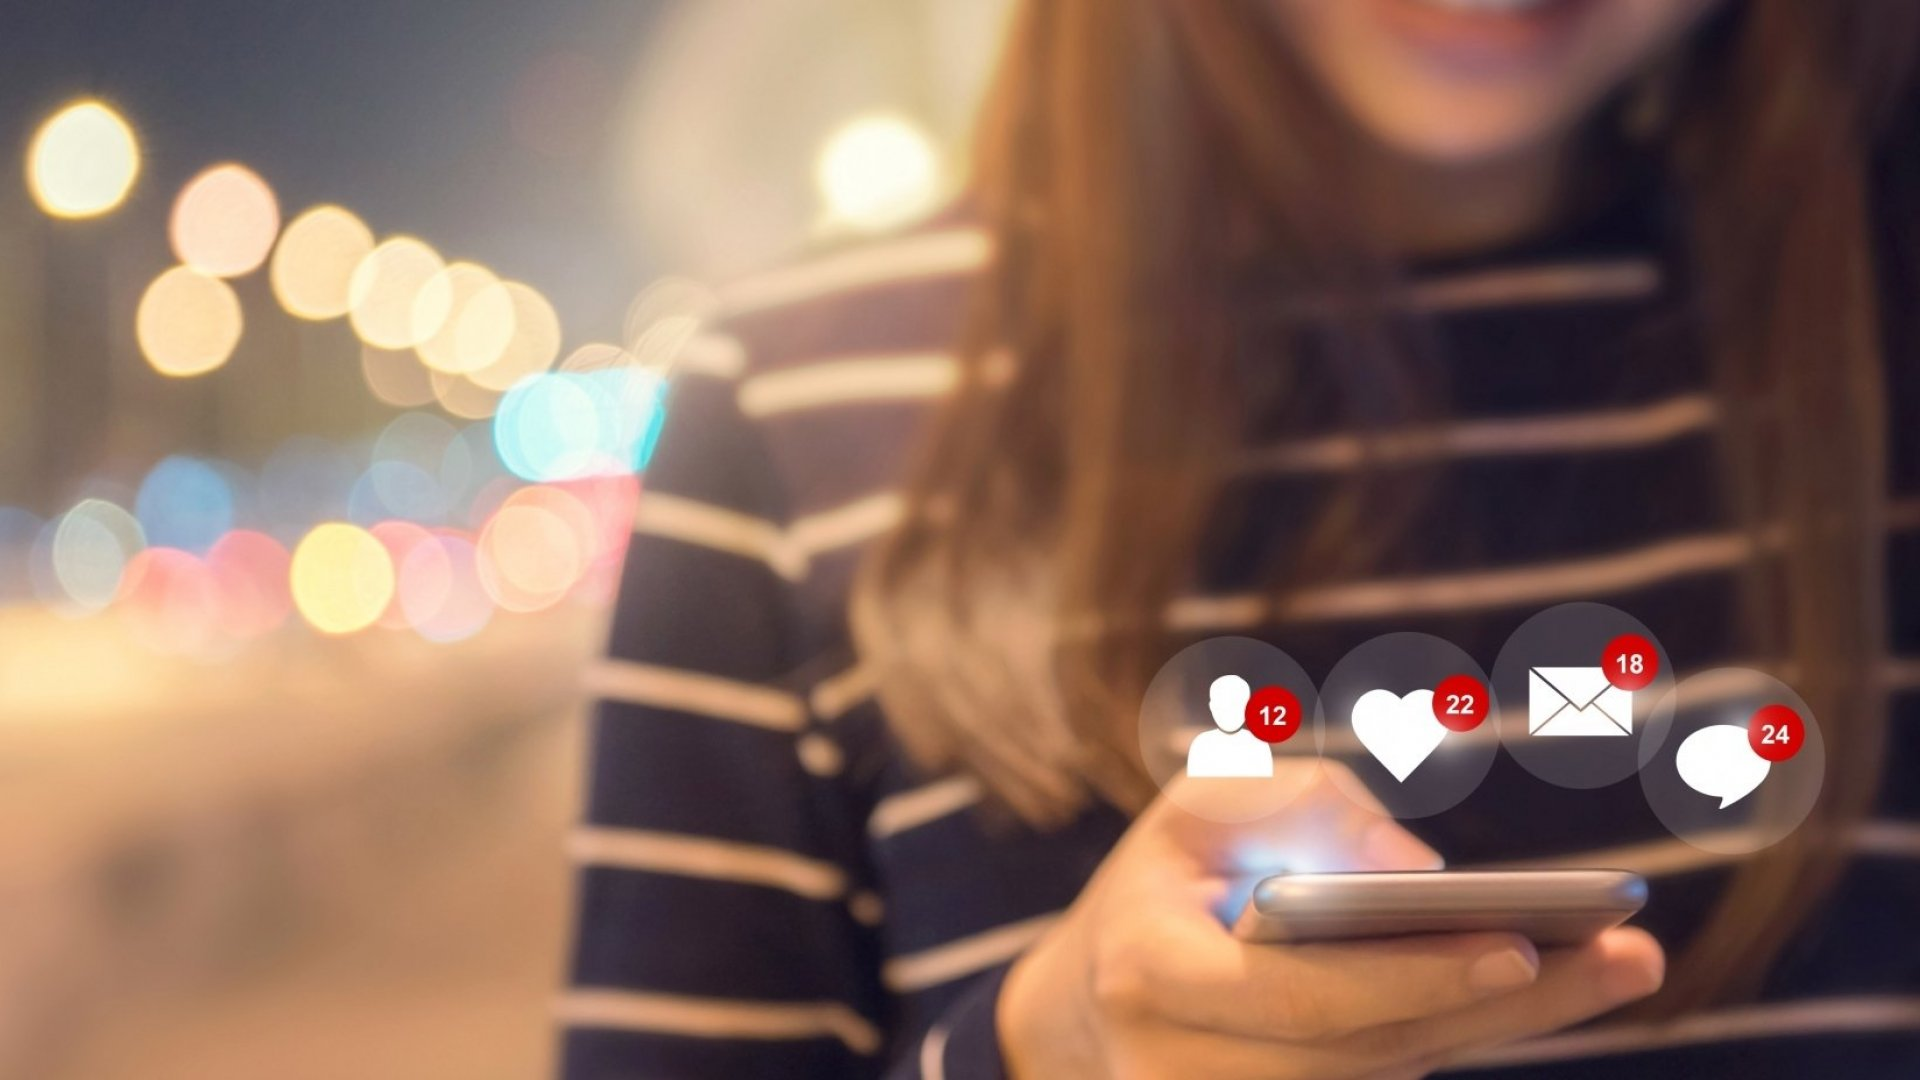 While social sharing as a new channel is attractive, many brands have failed to drive growth through customer-sharing online. Why do some brands succeed with this channel and others fail?